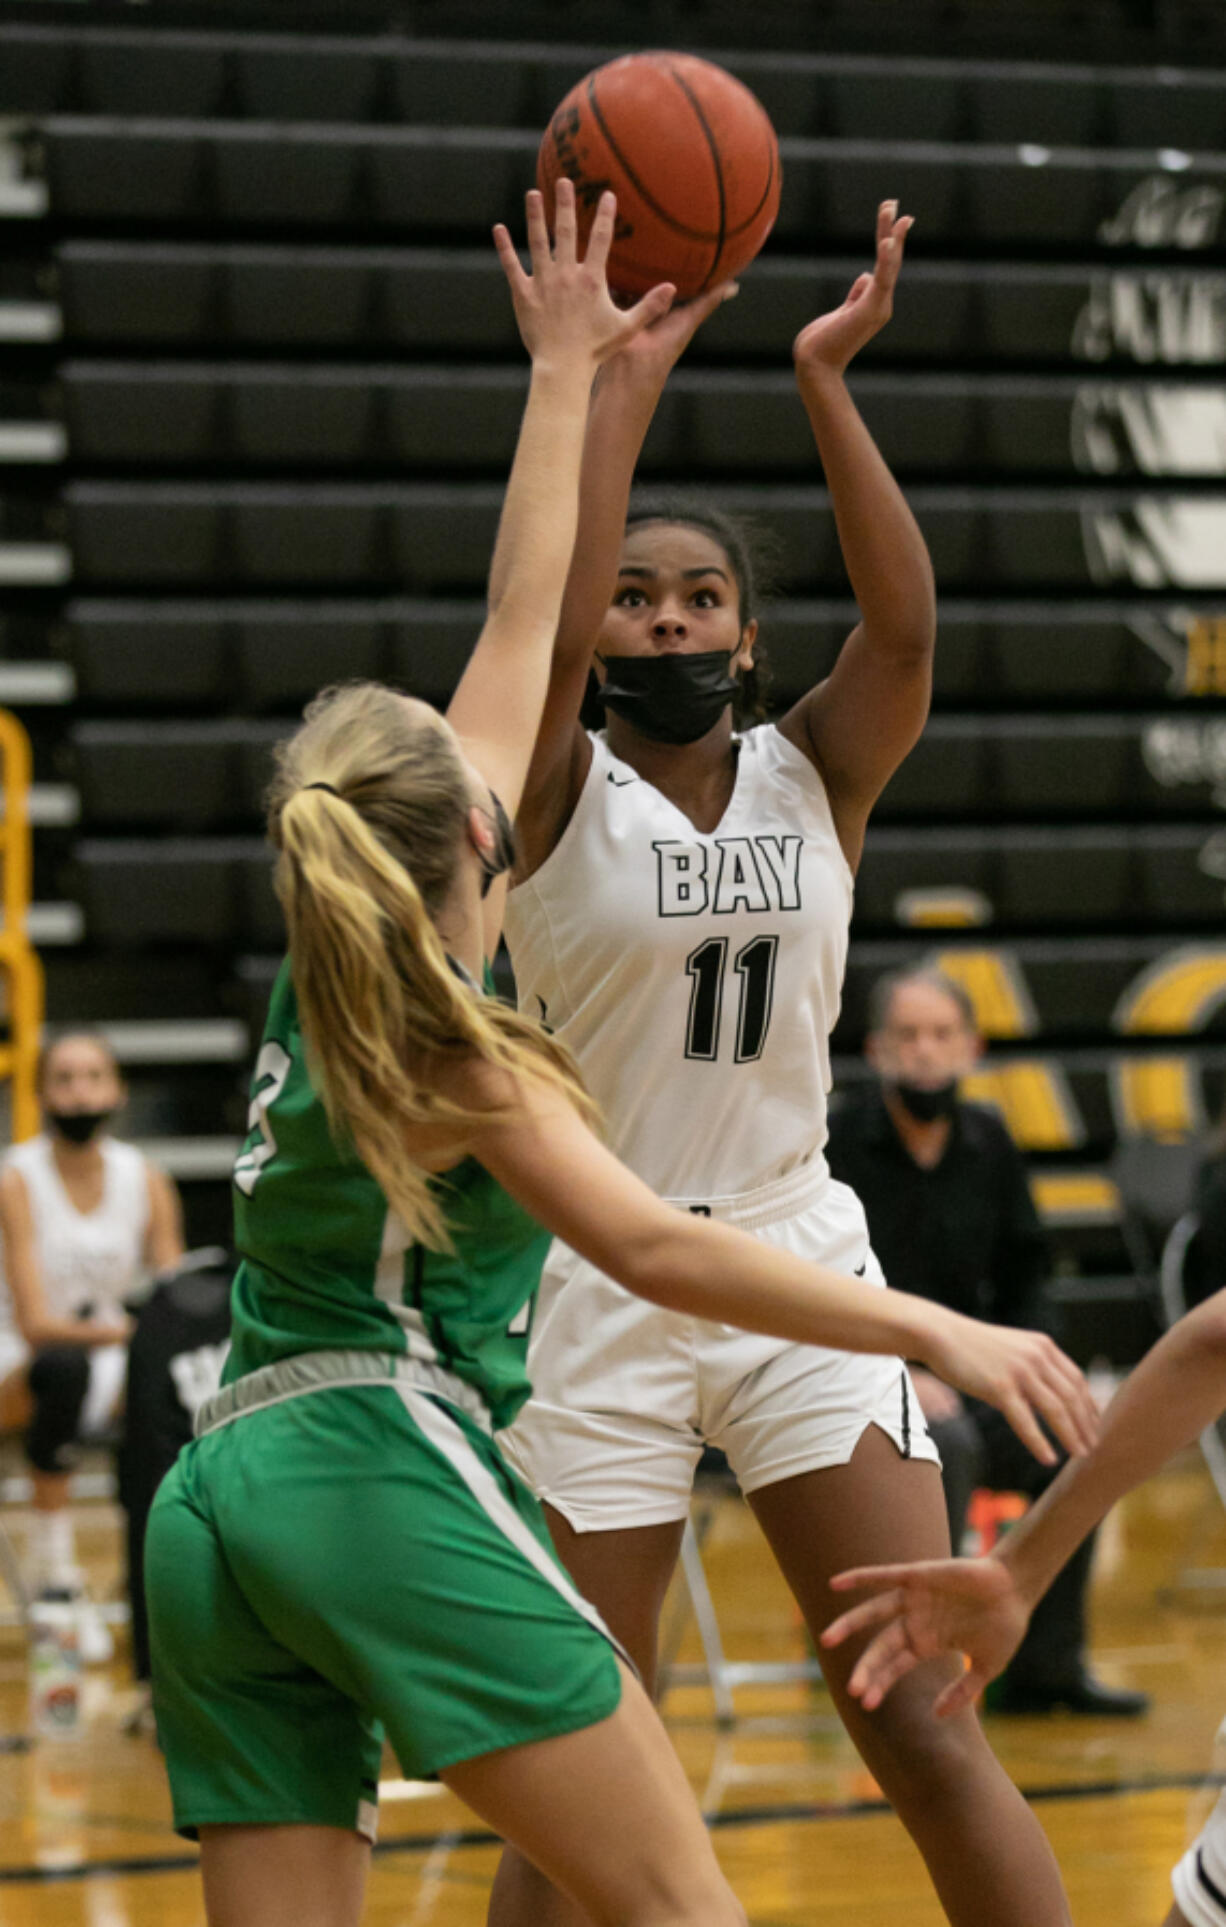 Hudson's Bay forward Jaydia Martin (11) takes a shot while being defended by Tumwater guard Aubrey Amendala (12) during the fourth quarter of the 2A district semi-final game at Hudson's Bay High School on Wednesday, June 9, 2021. Tumwater went on to win by of a score of 61-45.